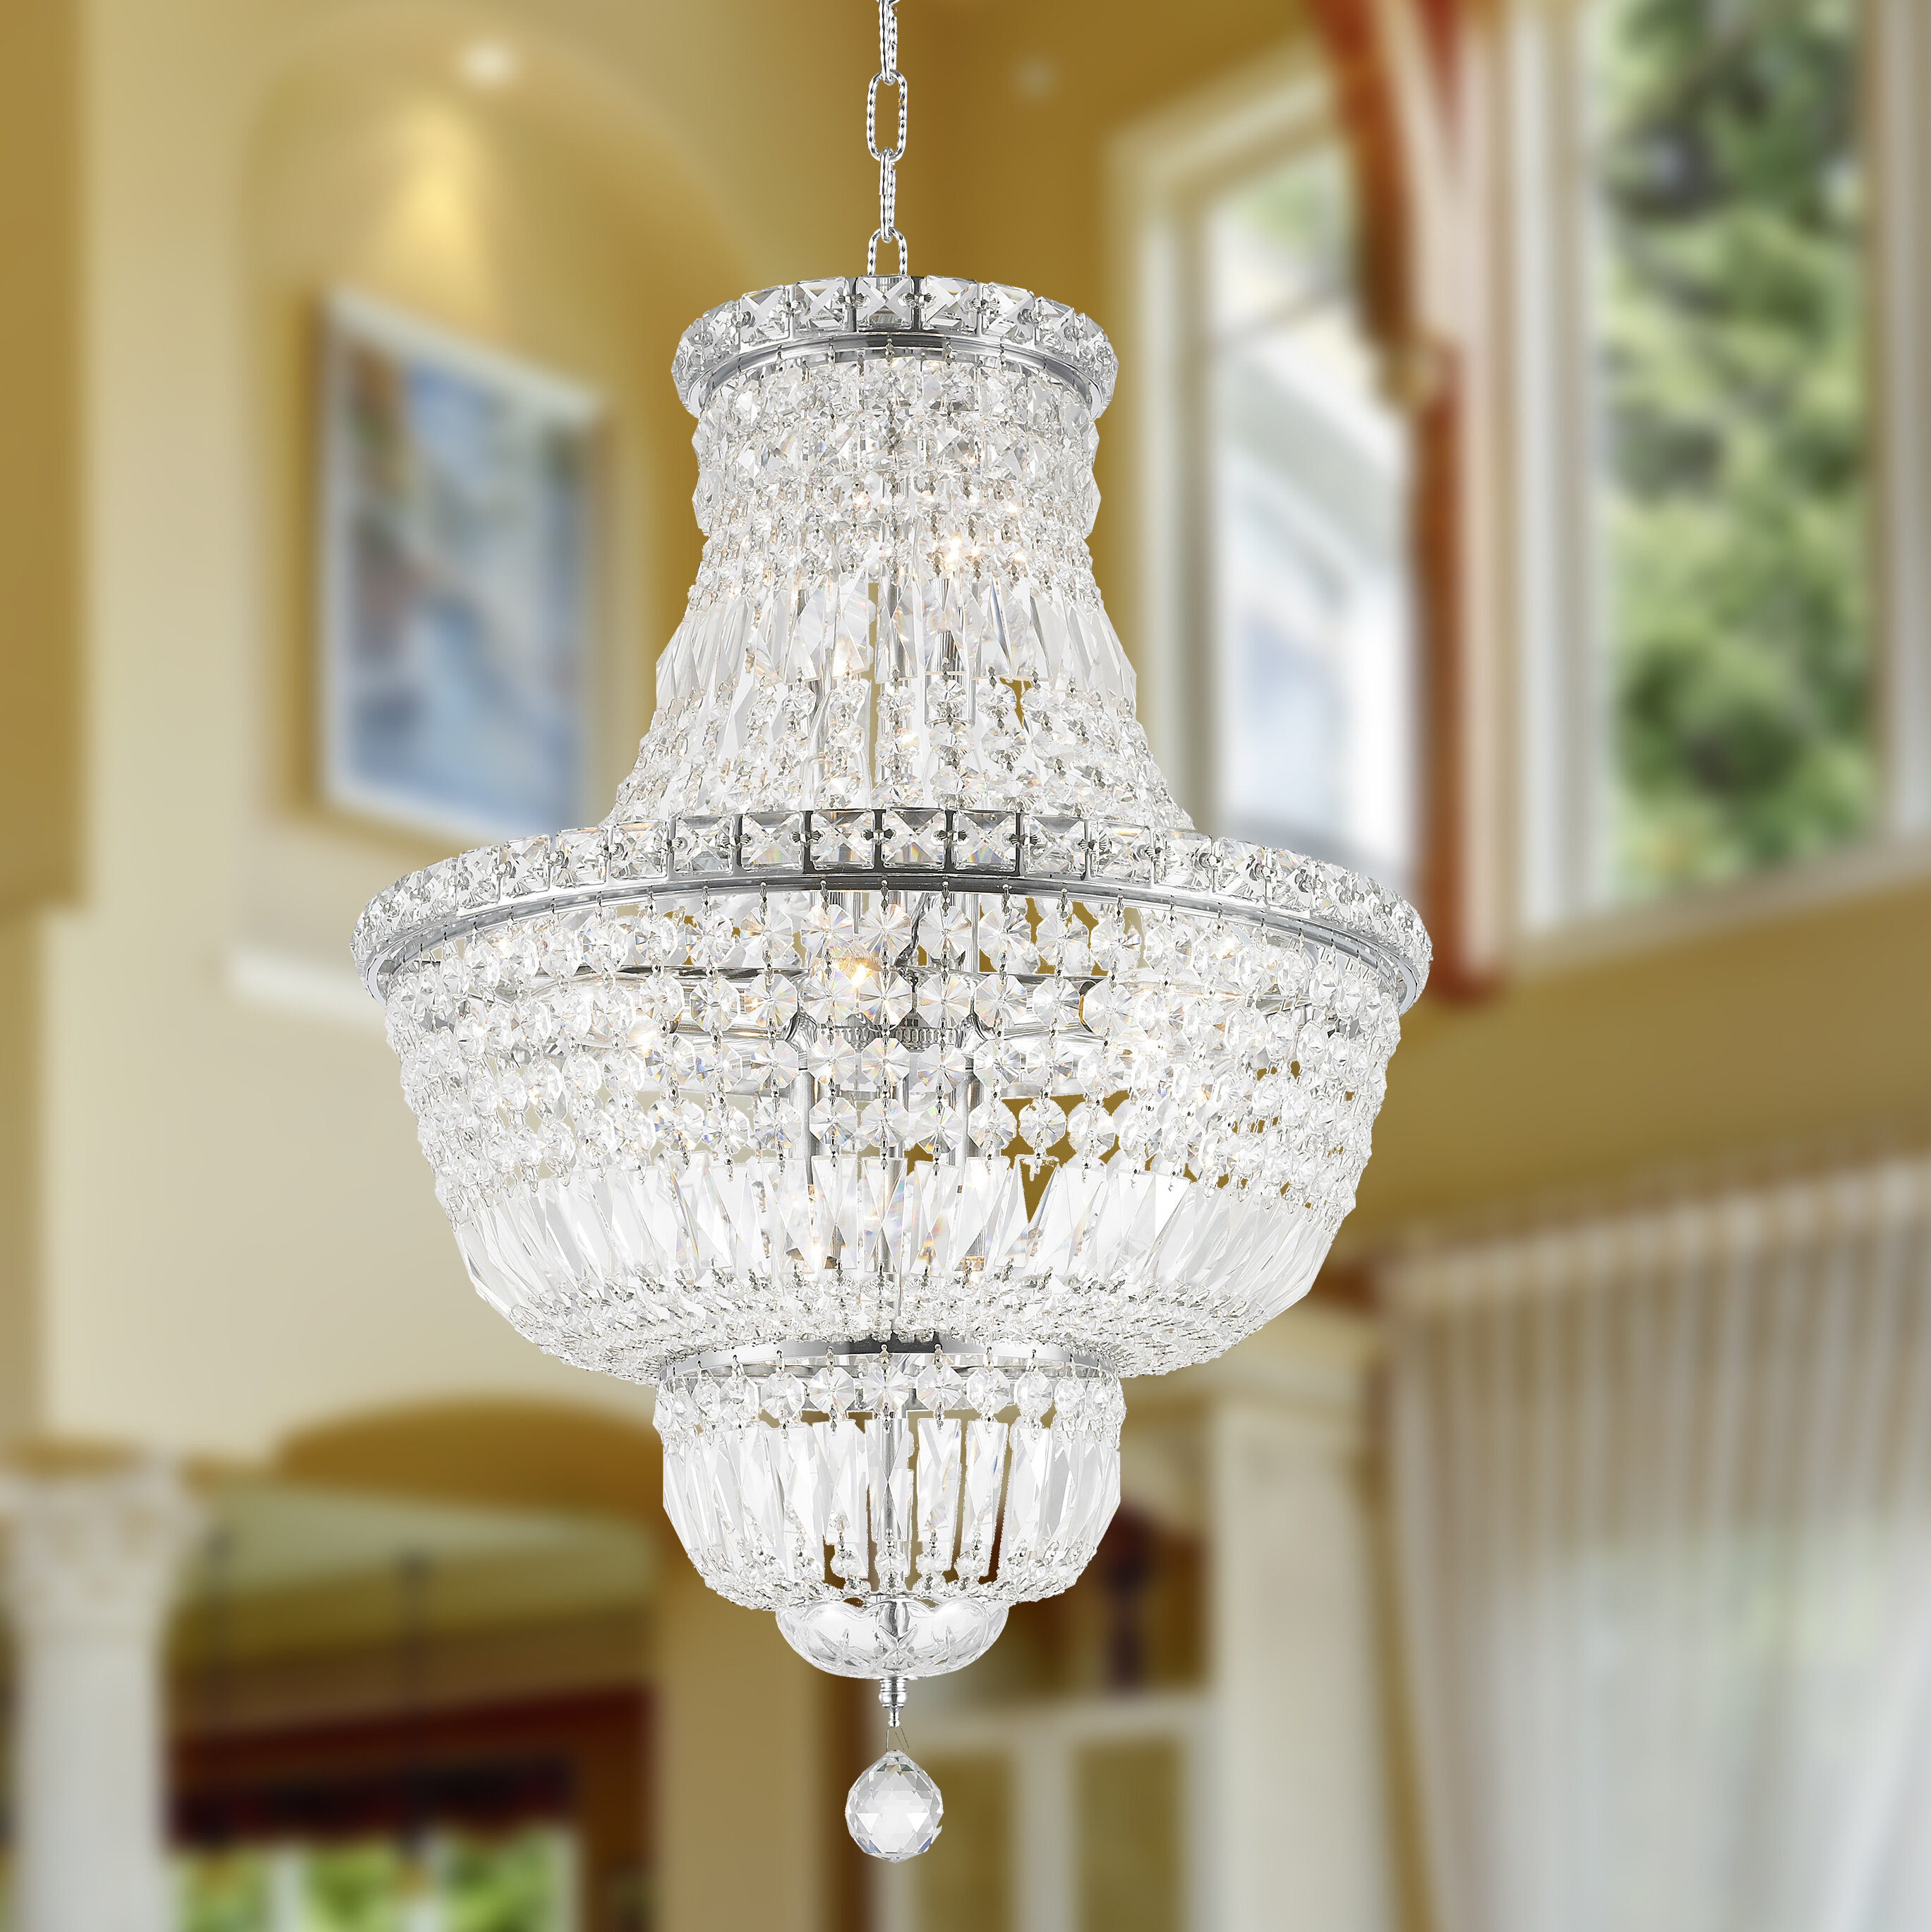 & House of Hampton Carson Glam 12-Light Chandelier u0026 Reviews | Wayfair